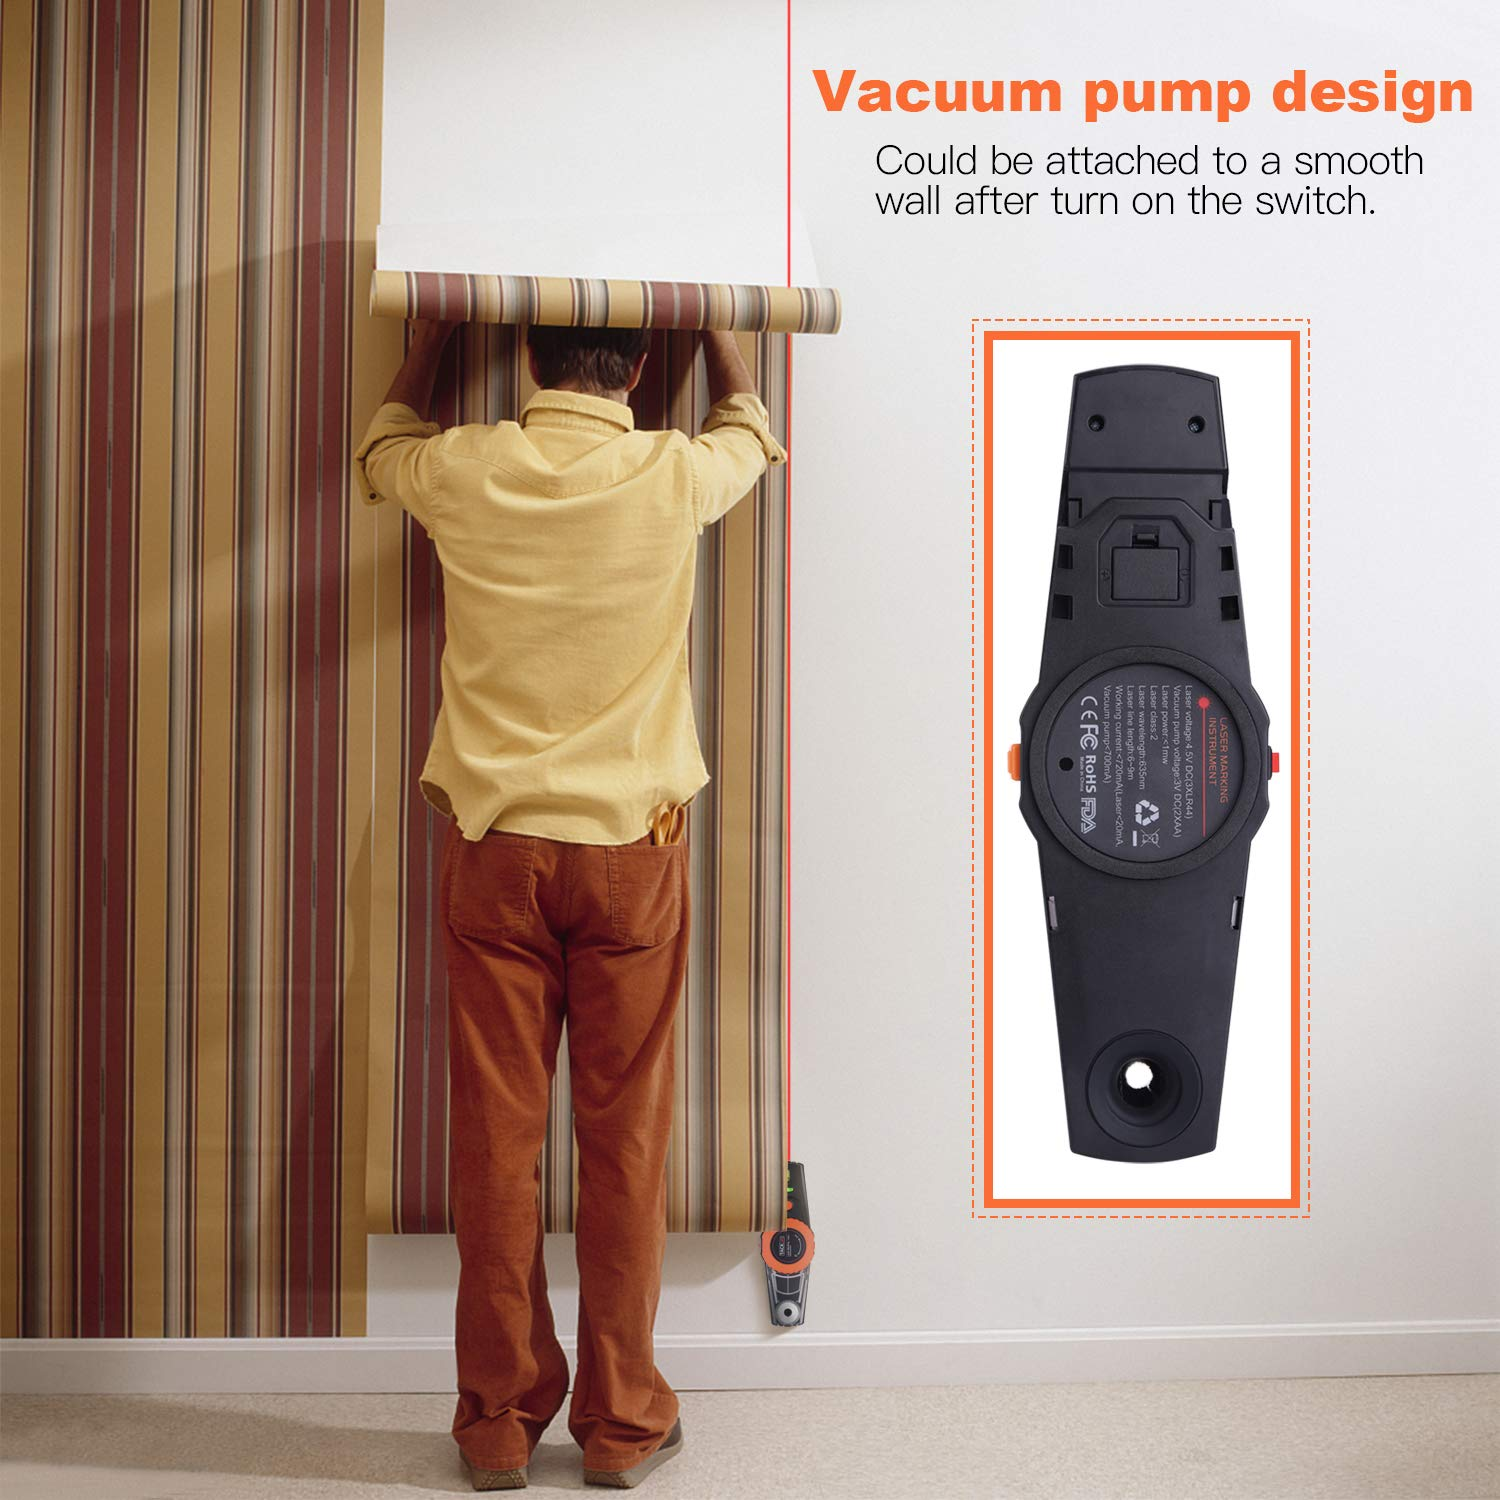 Vacuum Pump for Hanging Pictures DIY Laser Level Light Indicator Tile Alignment Batteries Included MI01 Wall Studding Laser Marking Instrument 30Ft with 2 Level Bubbles